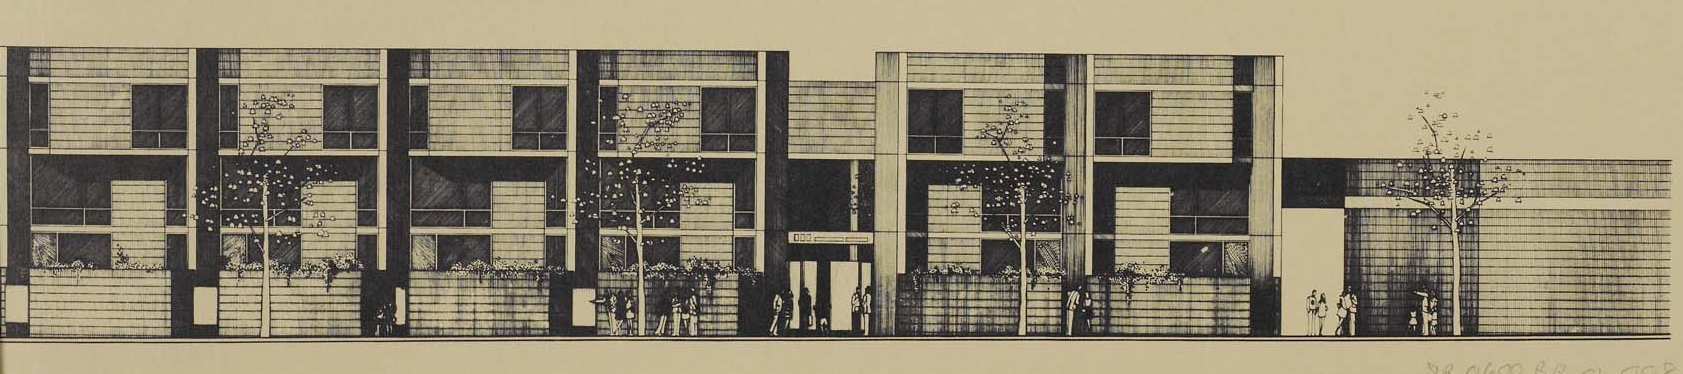 Rendering of Cadman Towers townhouses. Credit: New York Real Estate Brochures Collection - Columbia University.